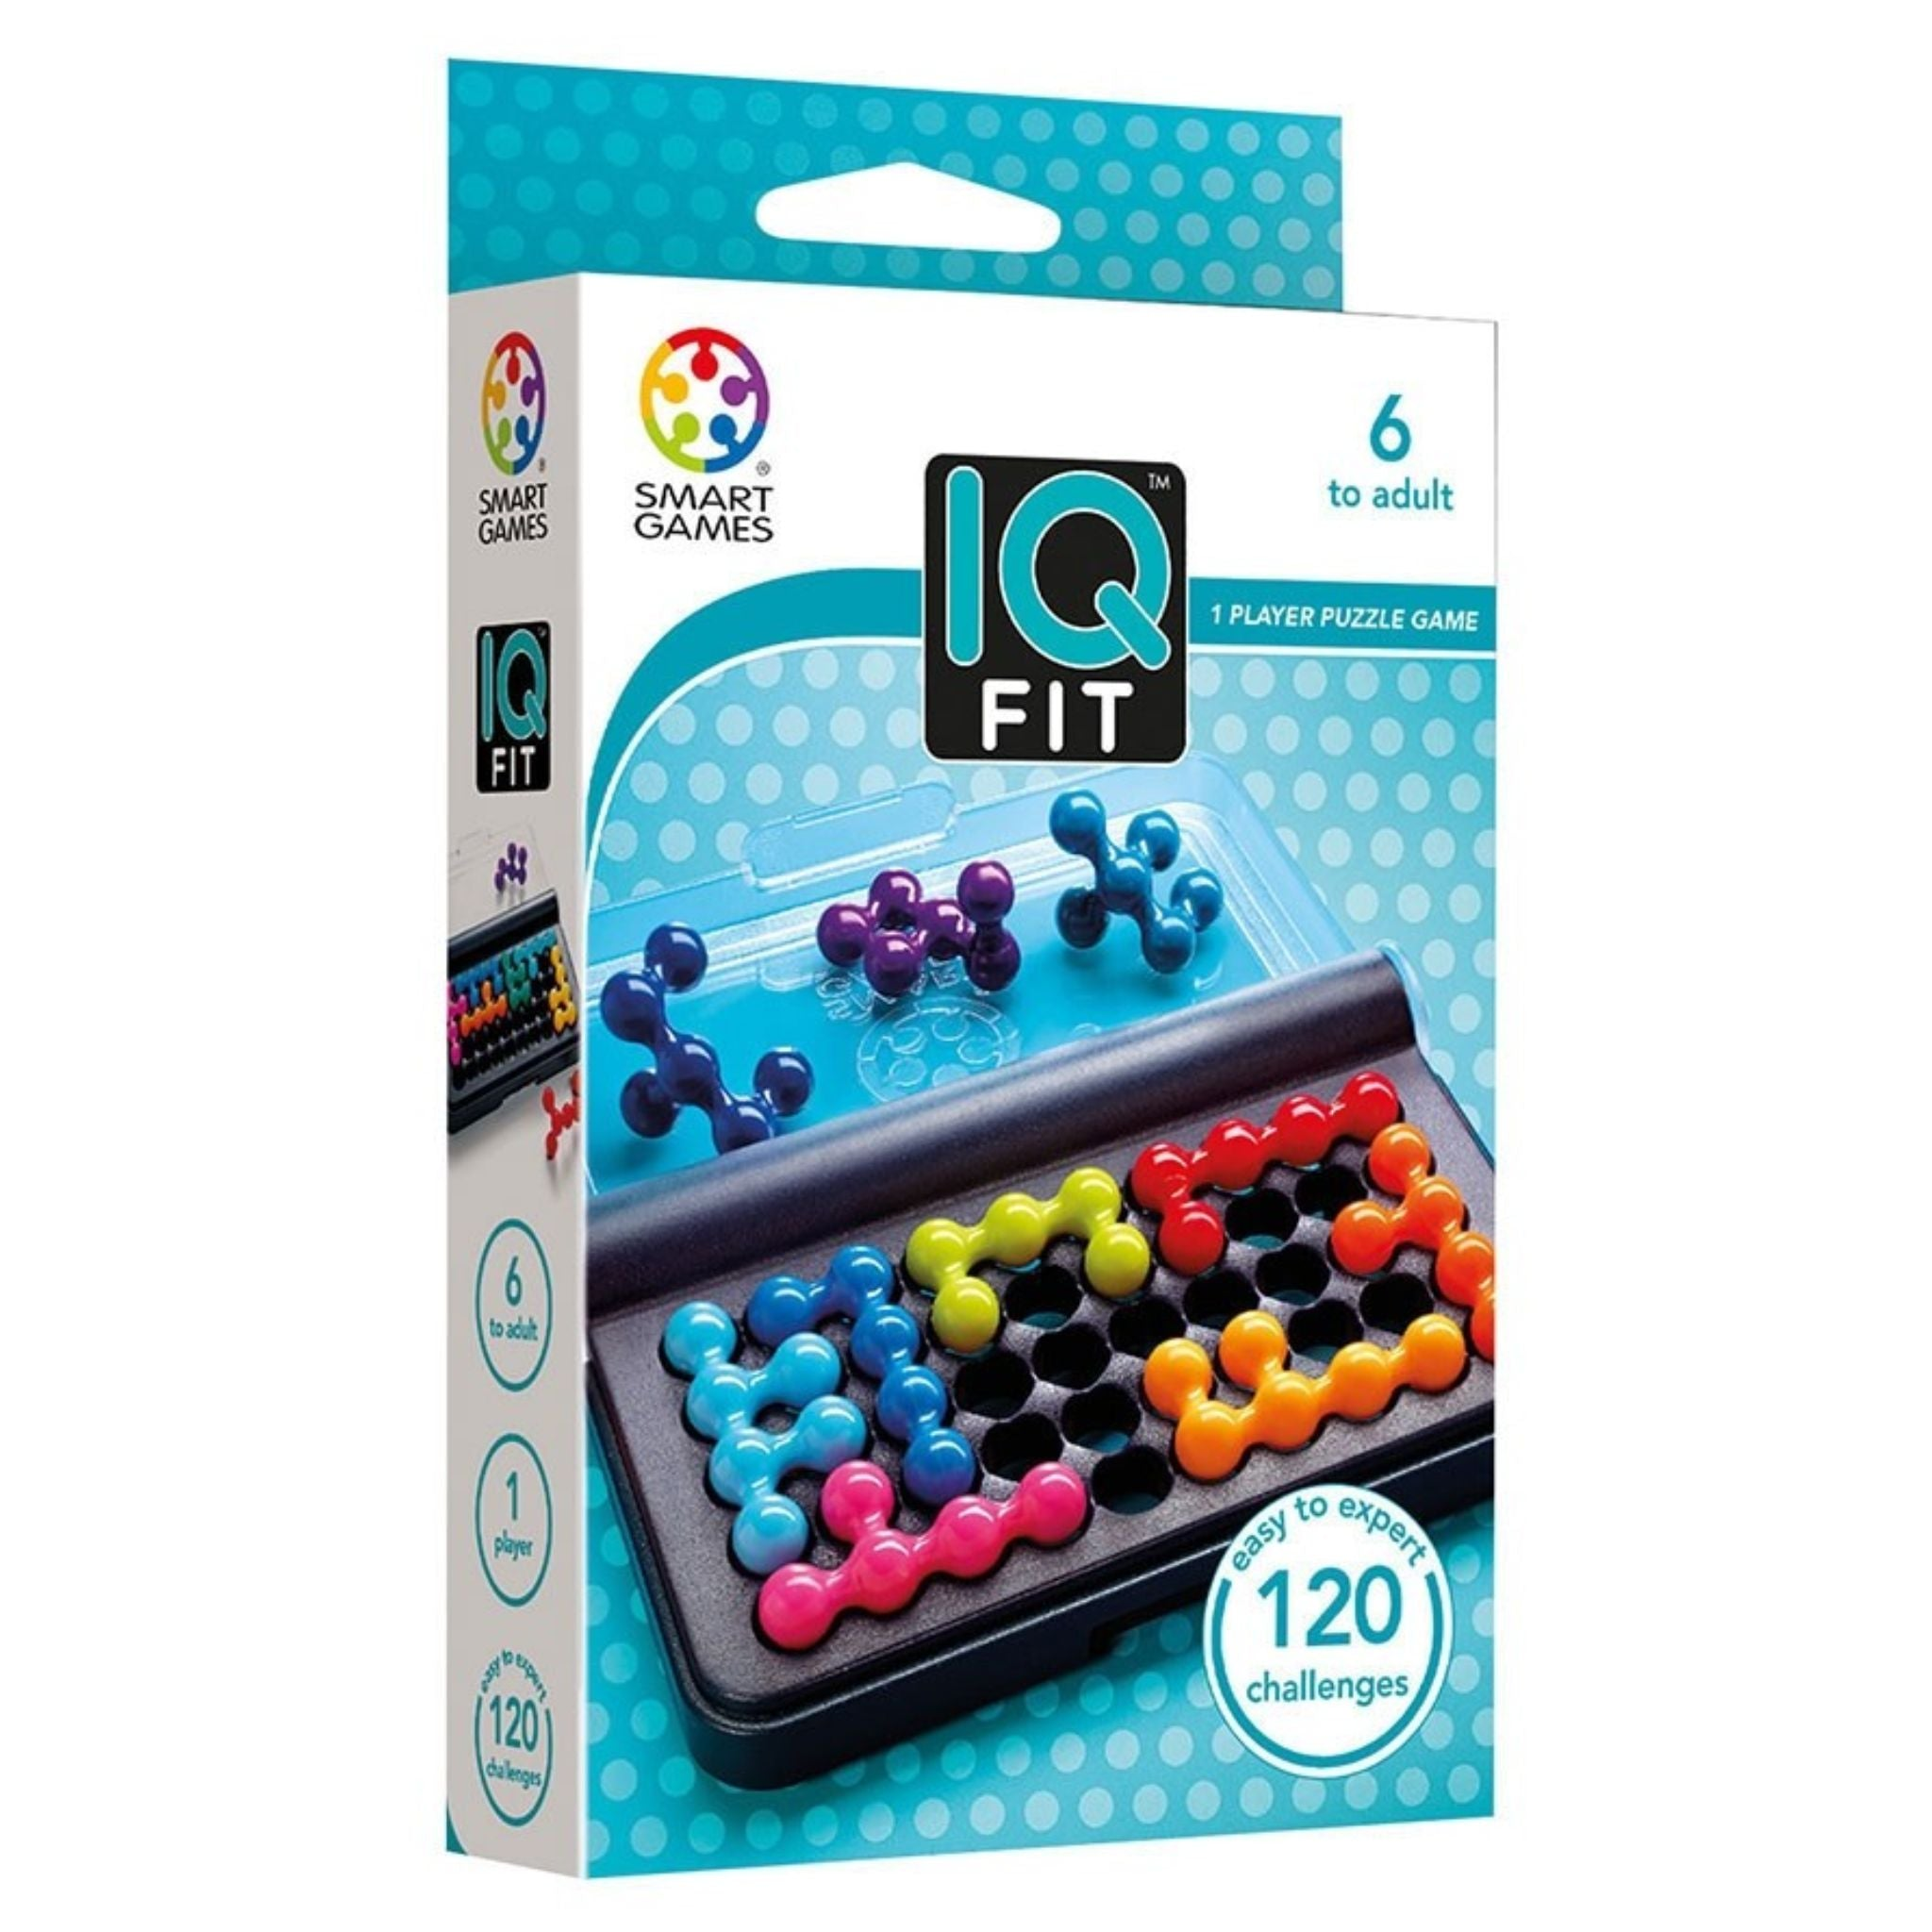 Smart Games IQ Fit - Display 12 pcs